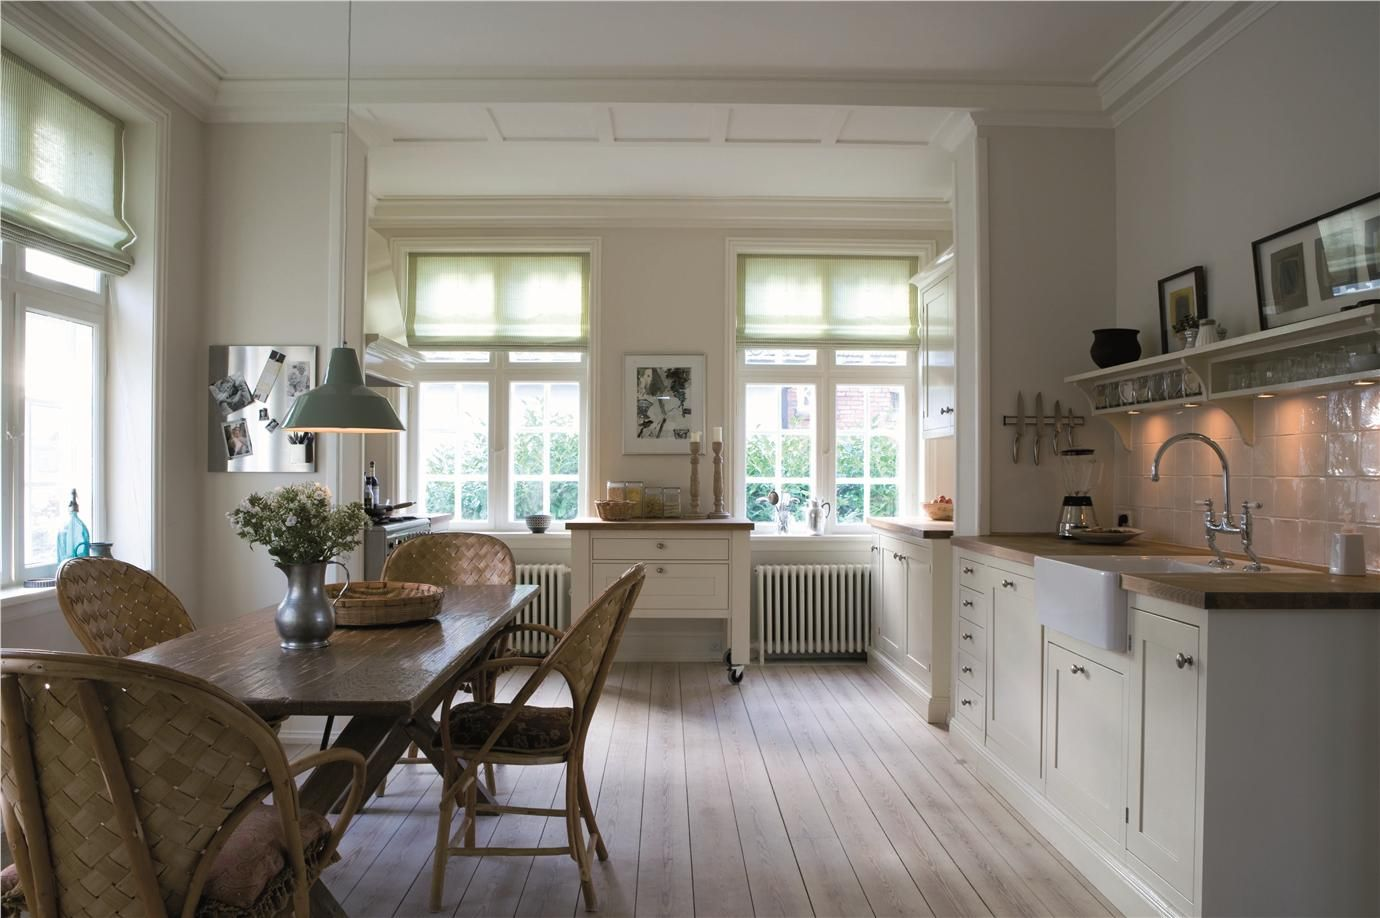 kitchen with walls in strong white modern emulsion, units in